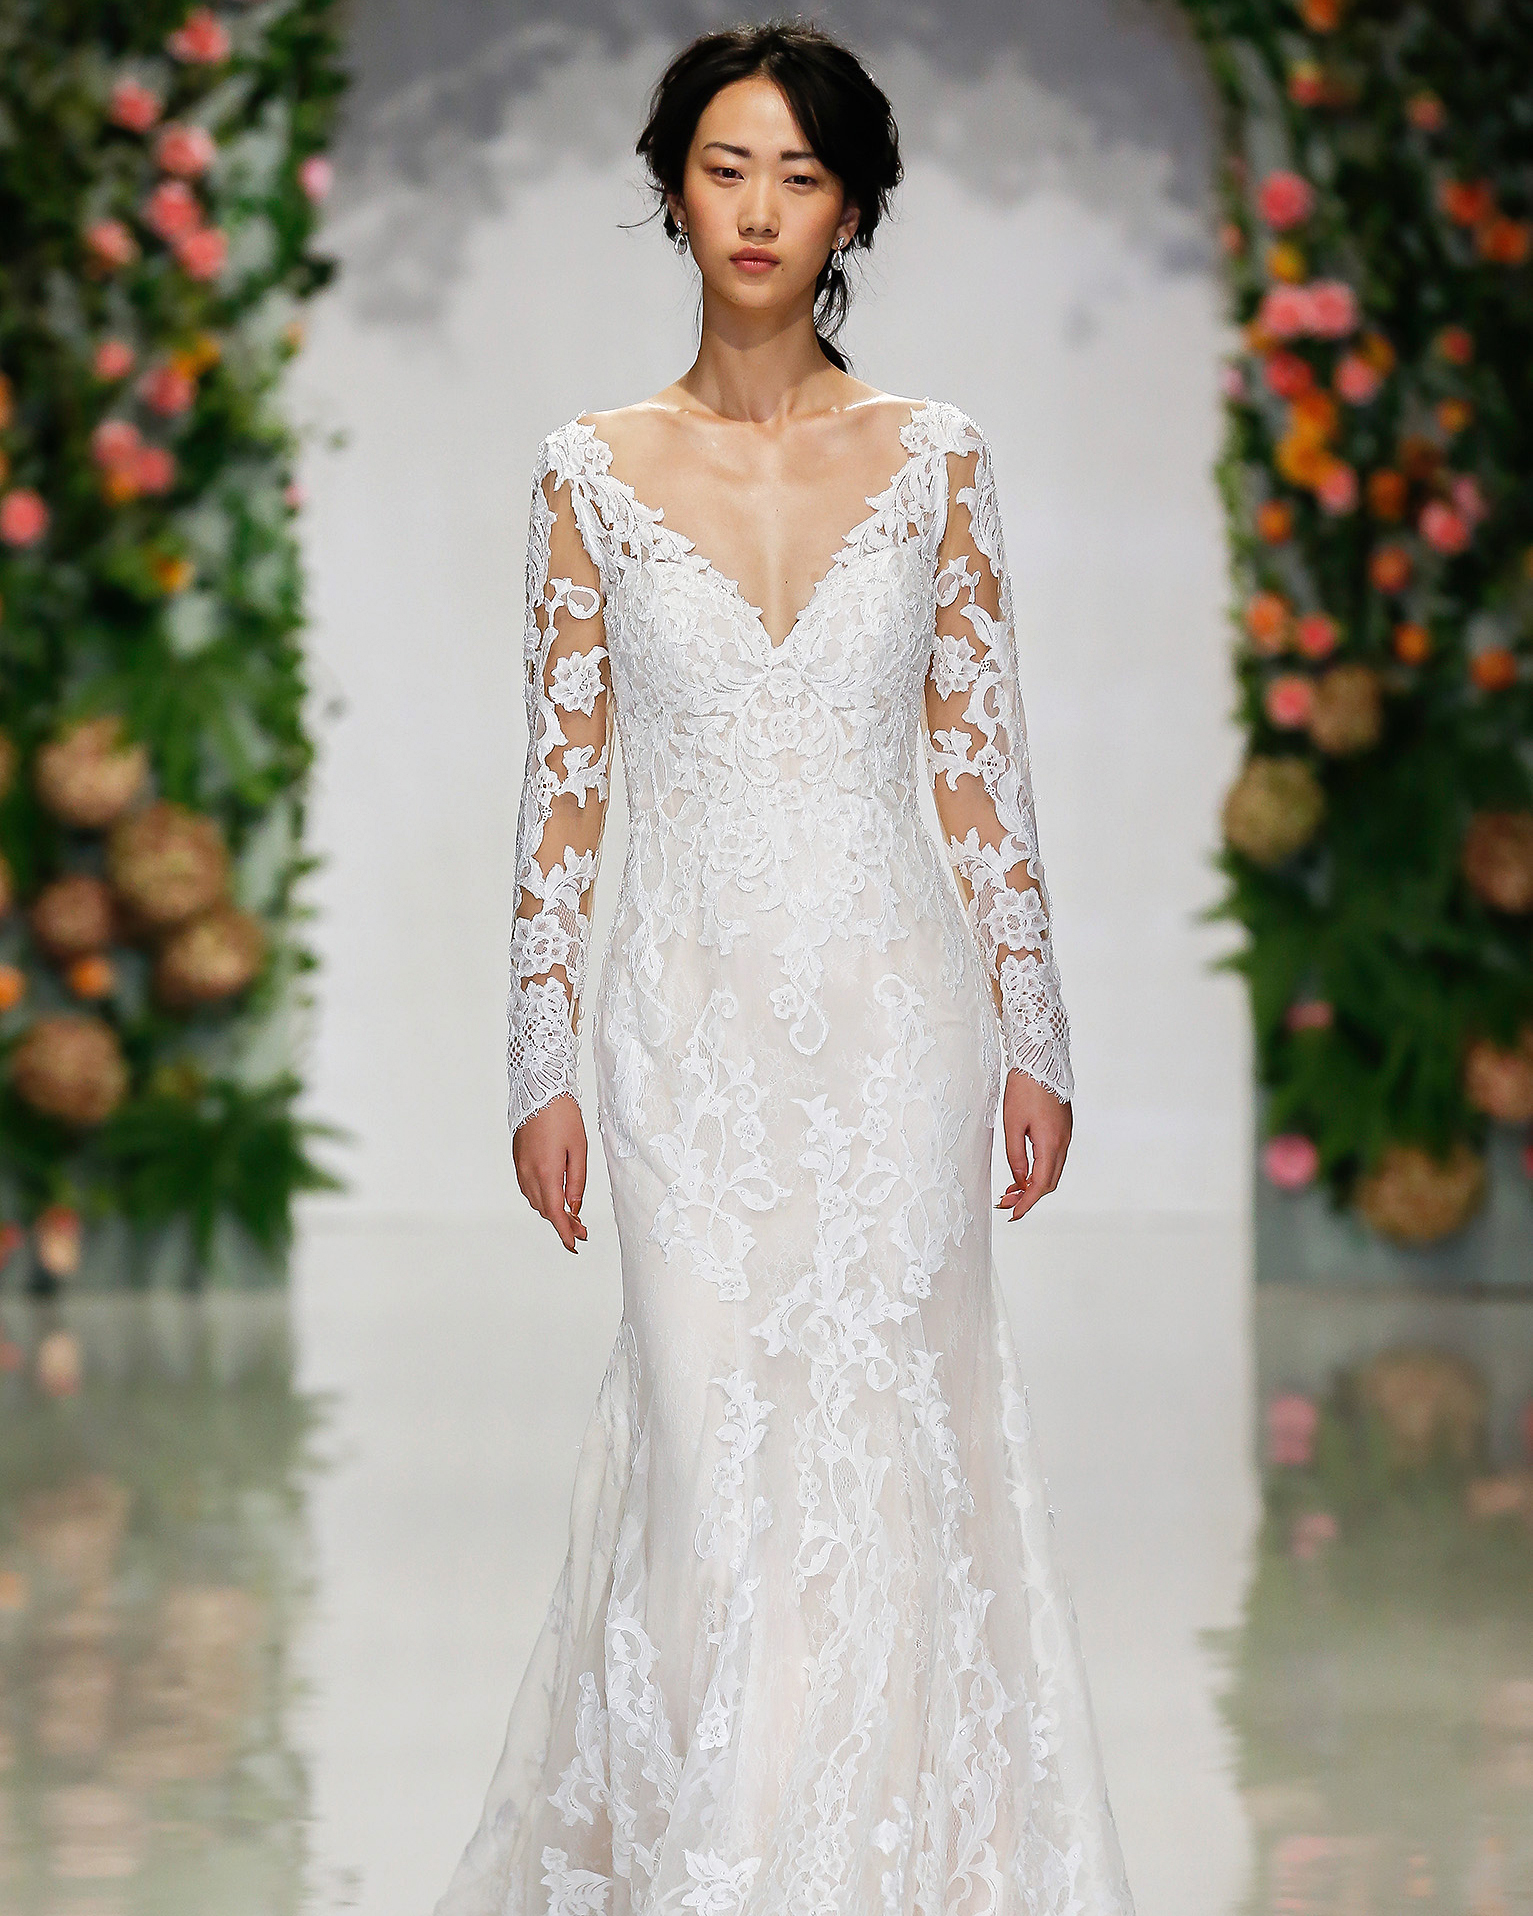 morilee madeline gardner wedding dress long-sleeved v-neck with lace overlay